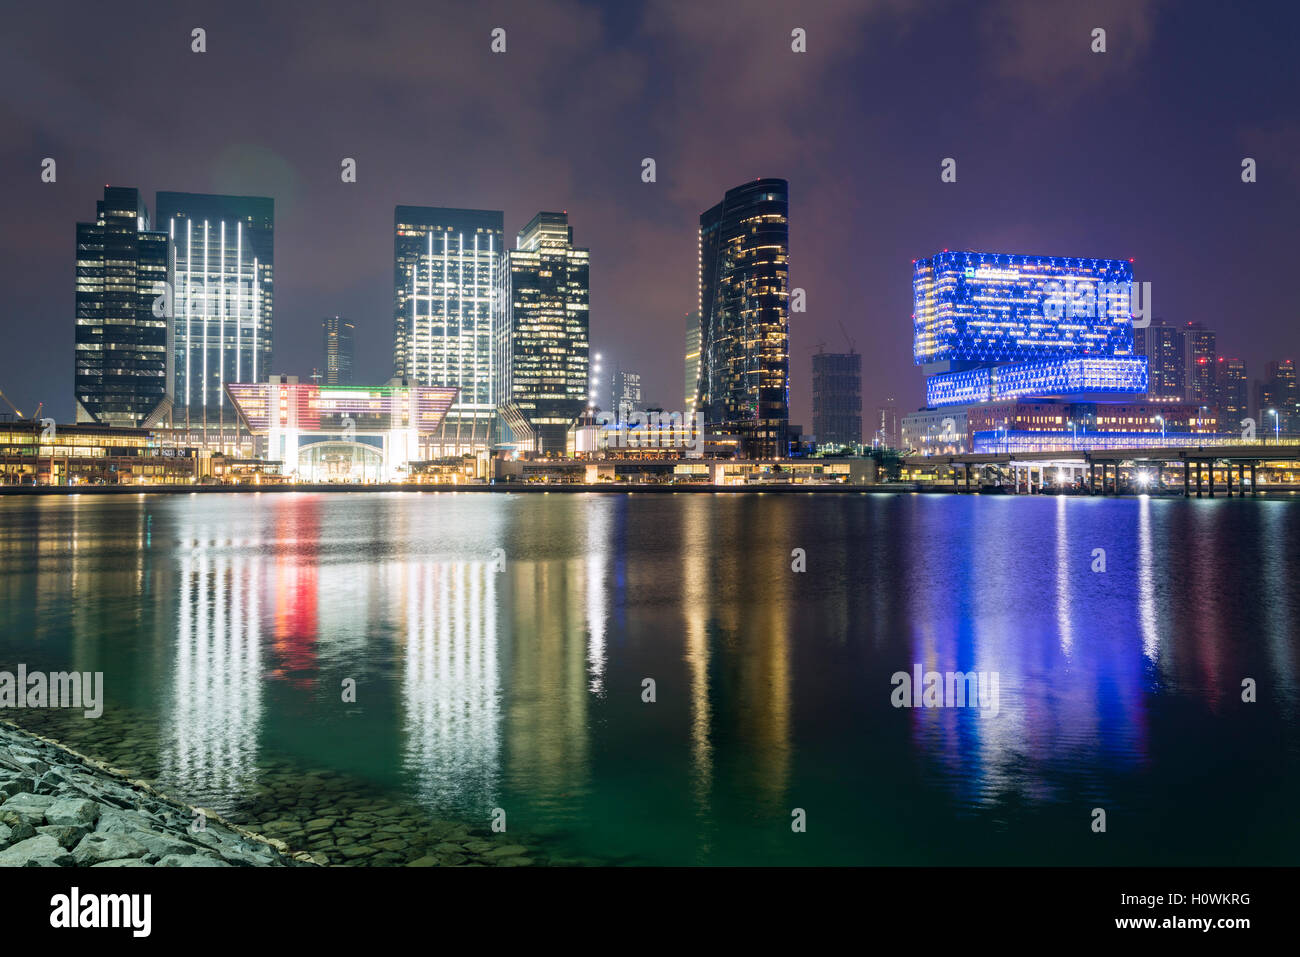 Night view of ADGM, Abu Dhabi Global Market modern business and commercial district on Al Maryah Island, Abu Dhabi, - Stock Image